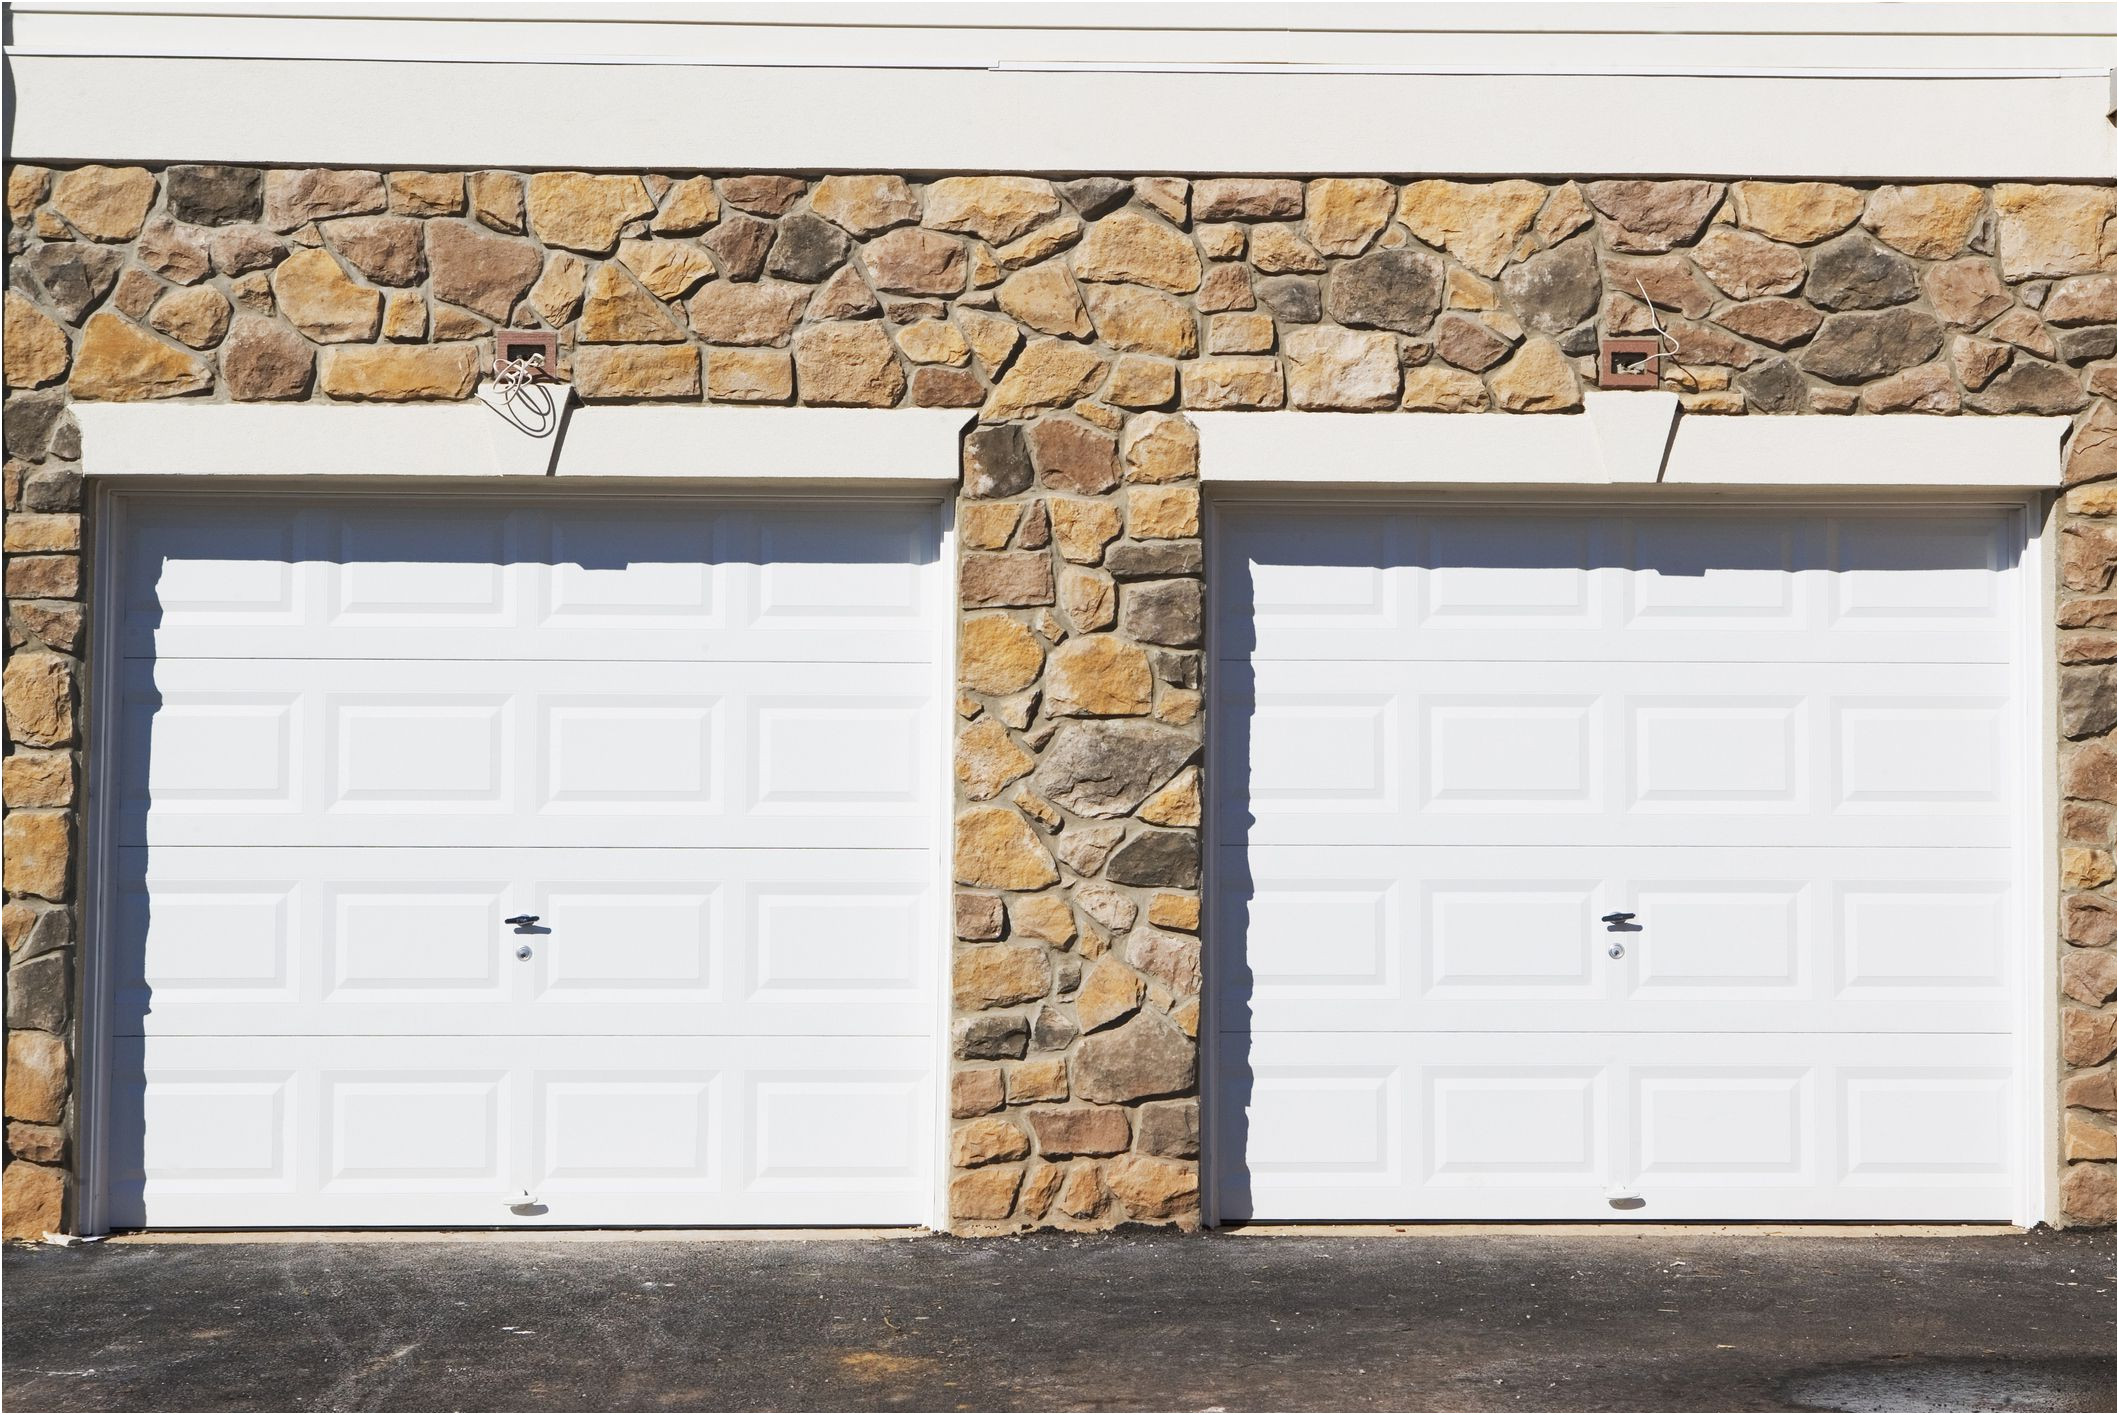 Truck Garage Door Sizes Unique Guide to Garage Door Sizes